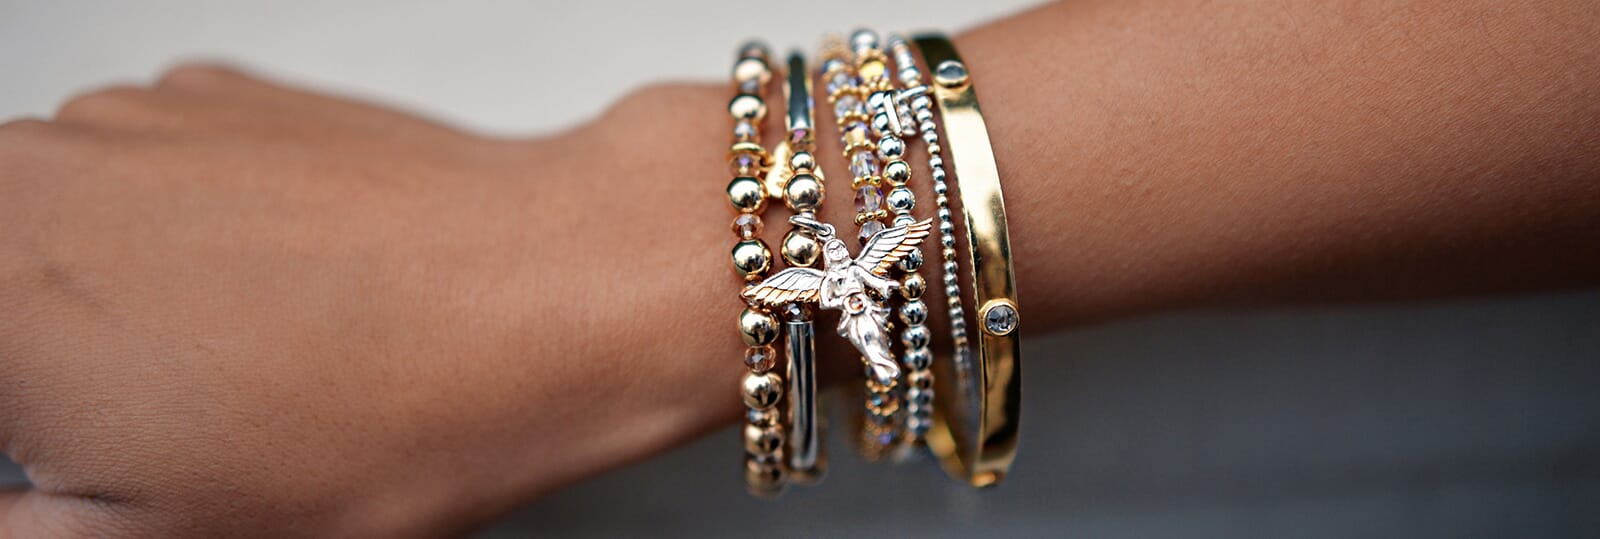 Limited Edition Joyous Bracelet Stack